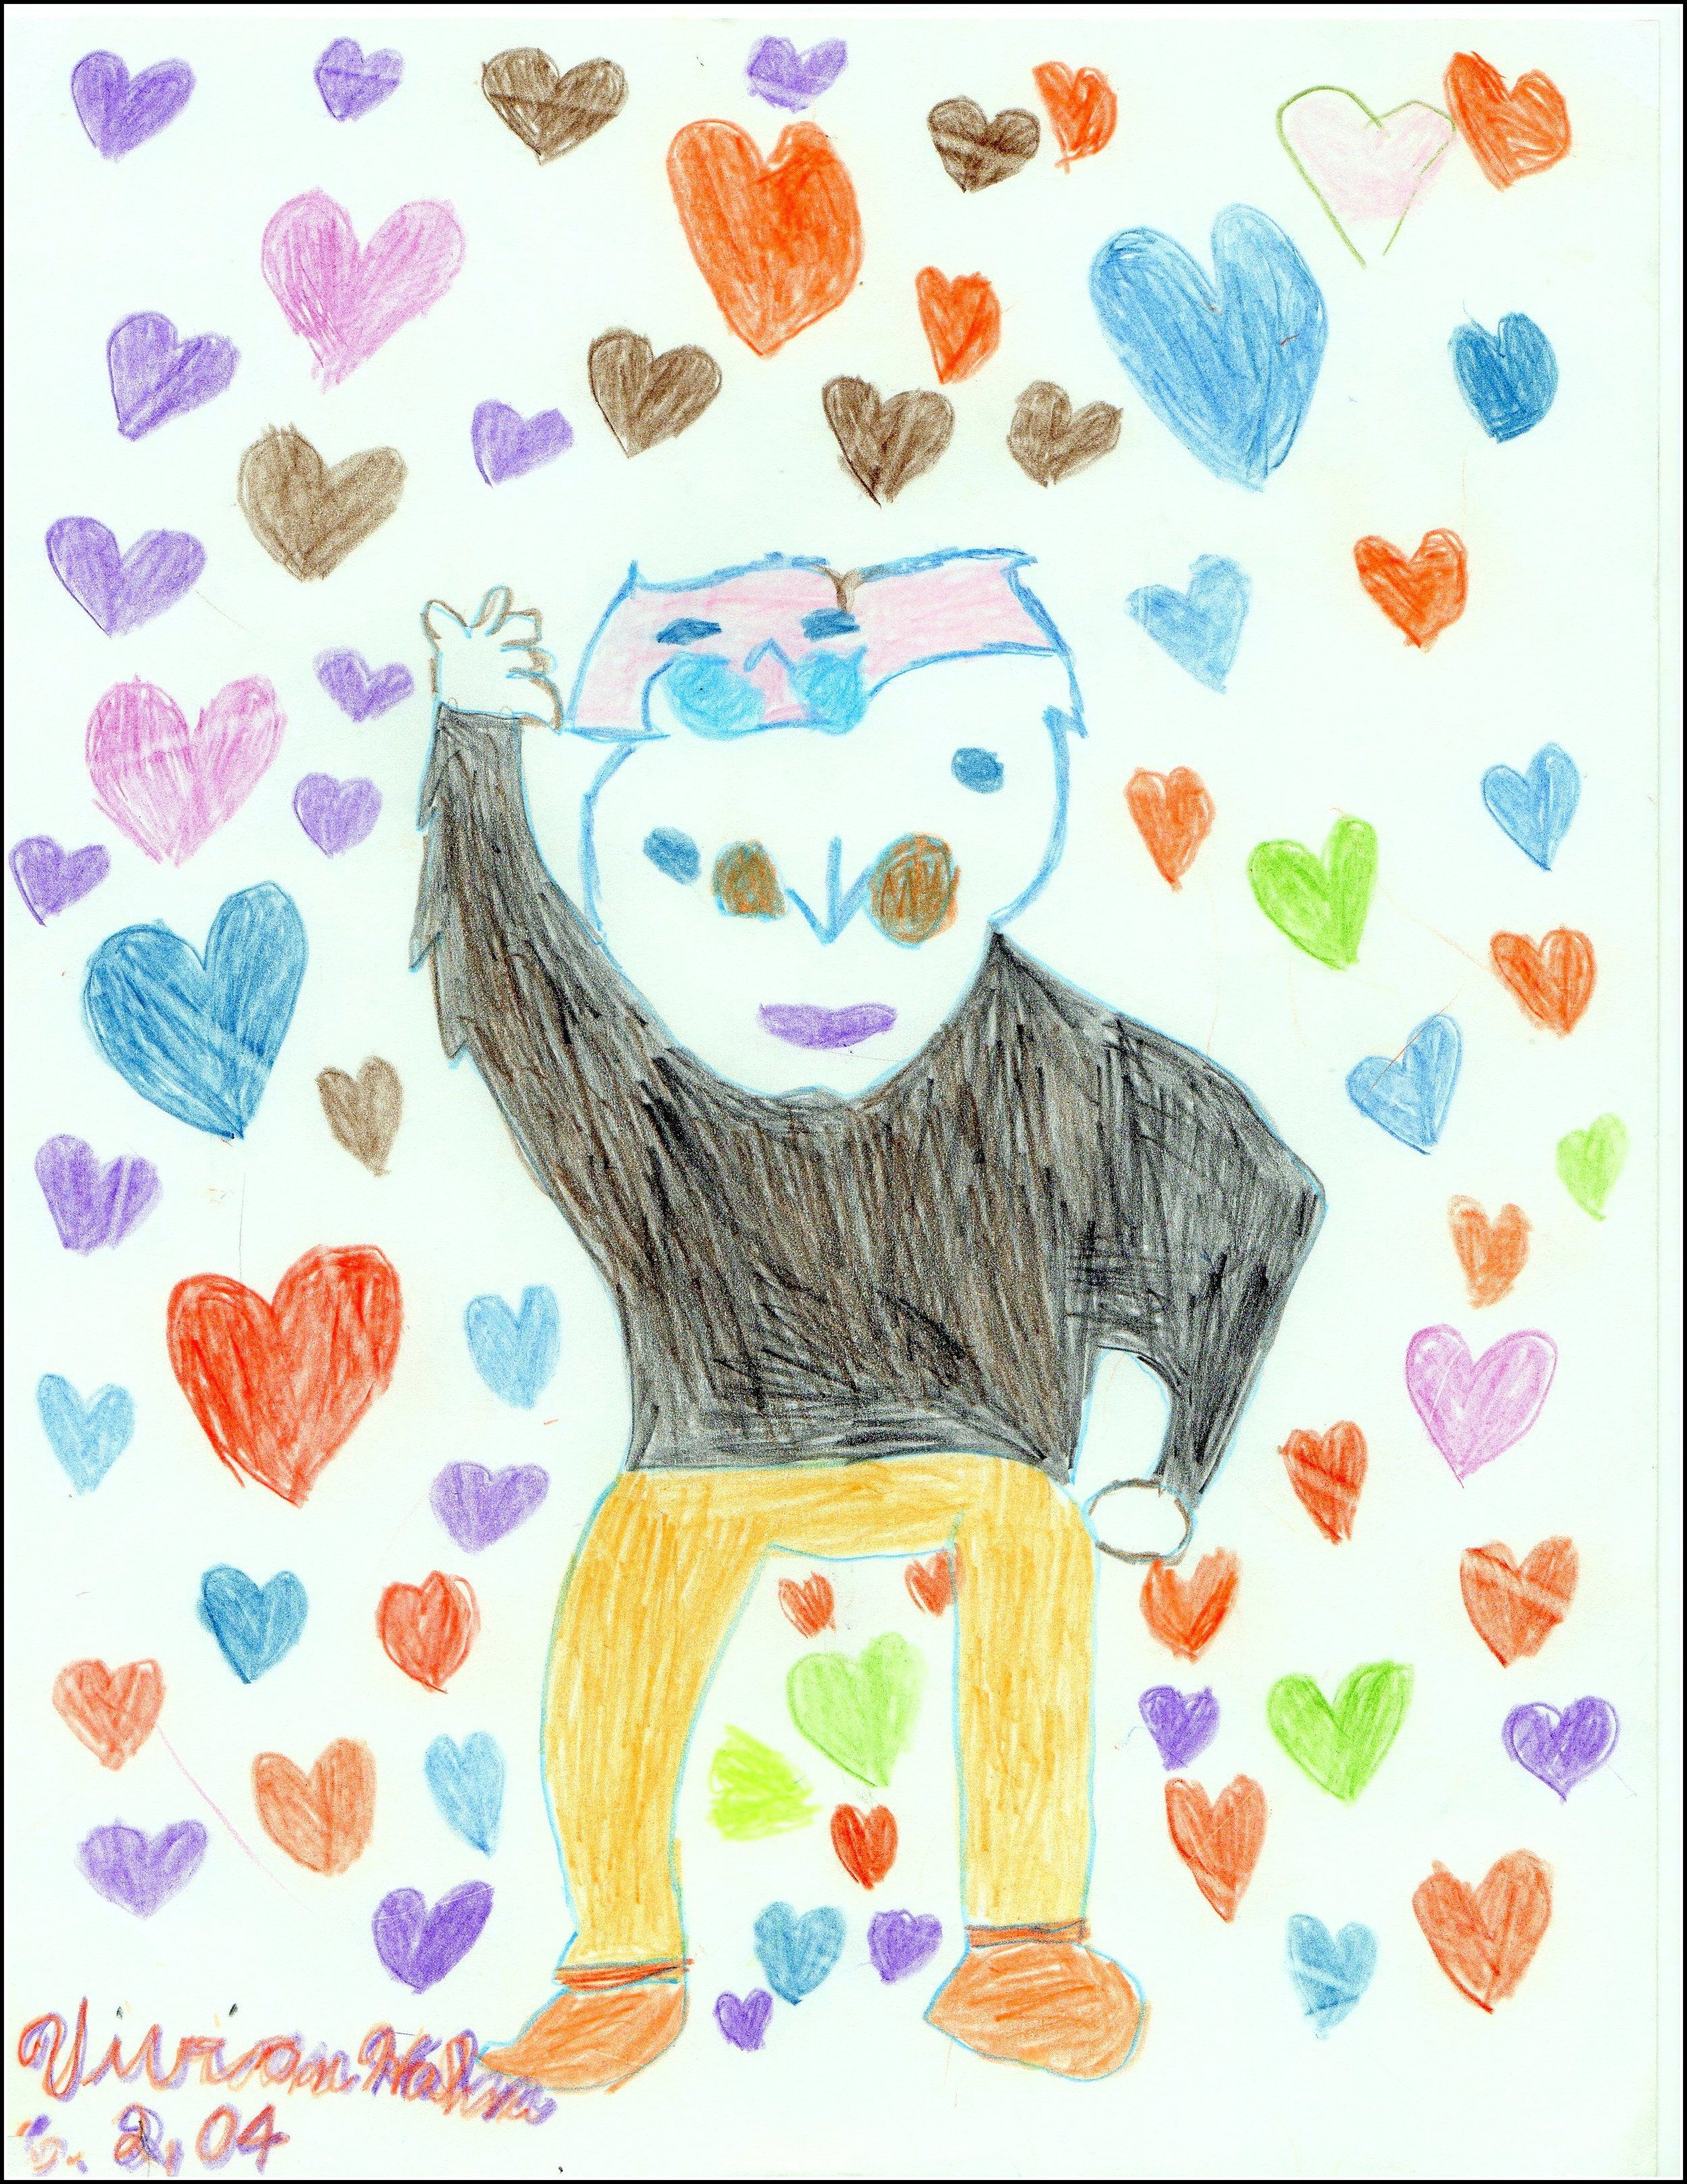 "Man with Hearts Vivian Hahn 9/9/2012 Color Marker on Paper 8-1/2 x 11"" prints $20, originals $40"